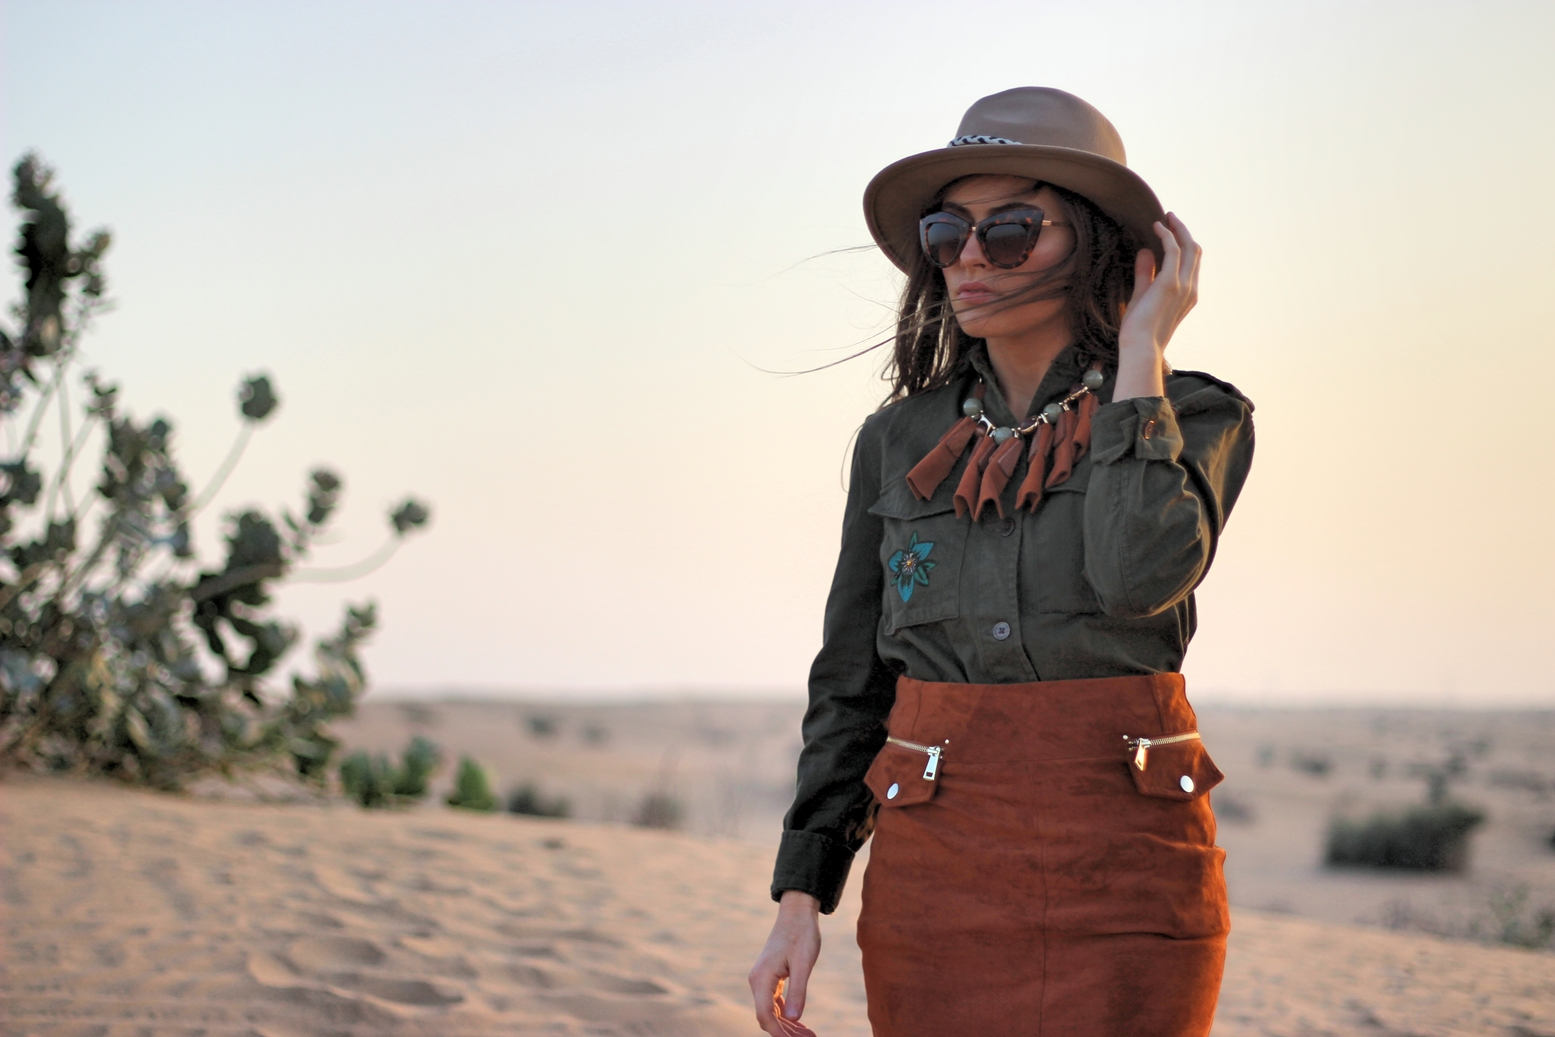 desert-dubai-safari-outfit-travel-look